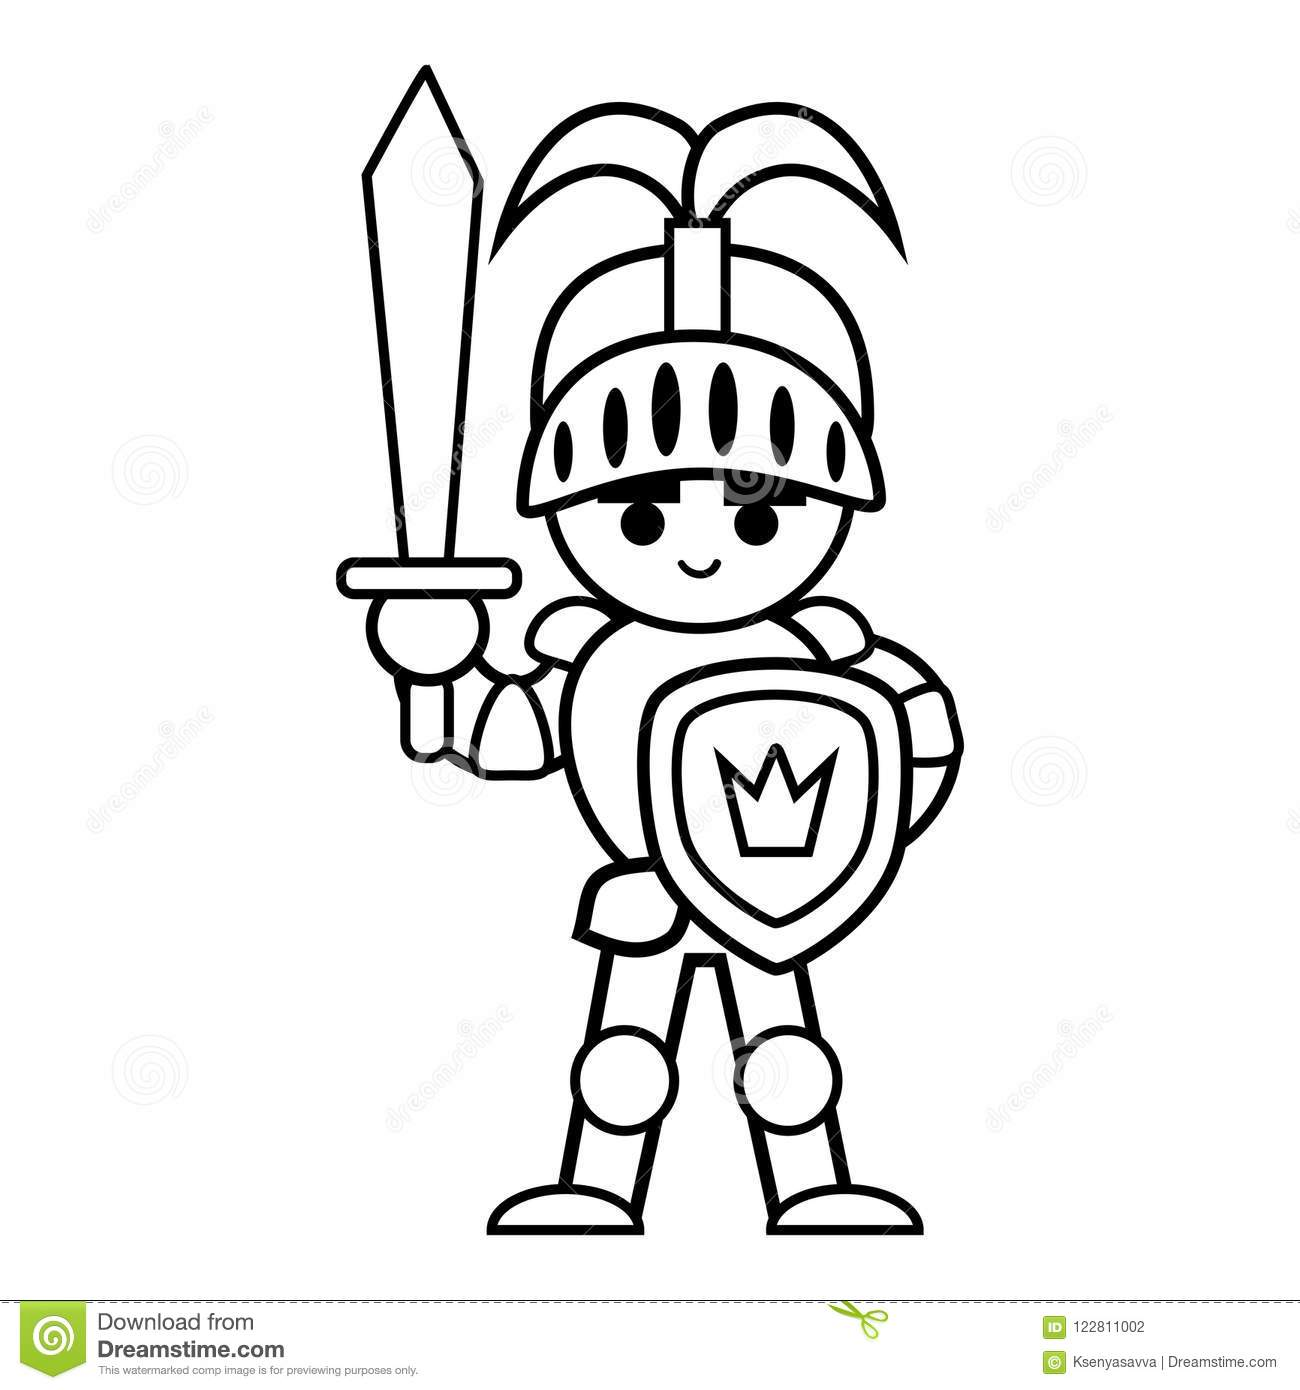 Coloring book, Knight stock vector. Illustration of black - 122811002